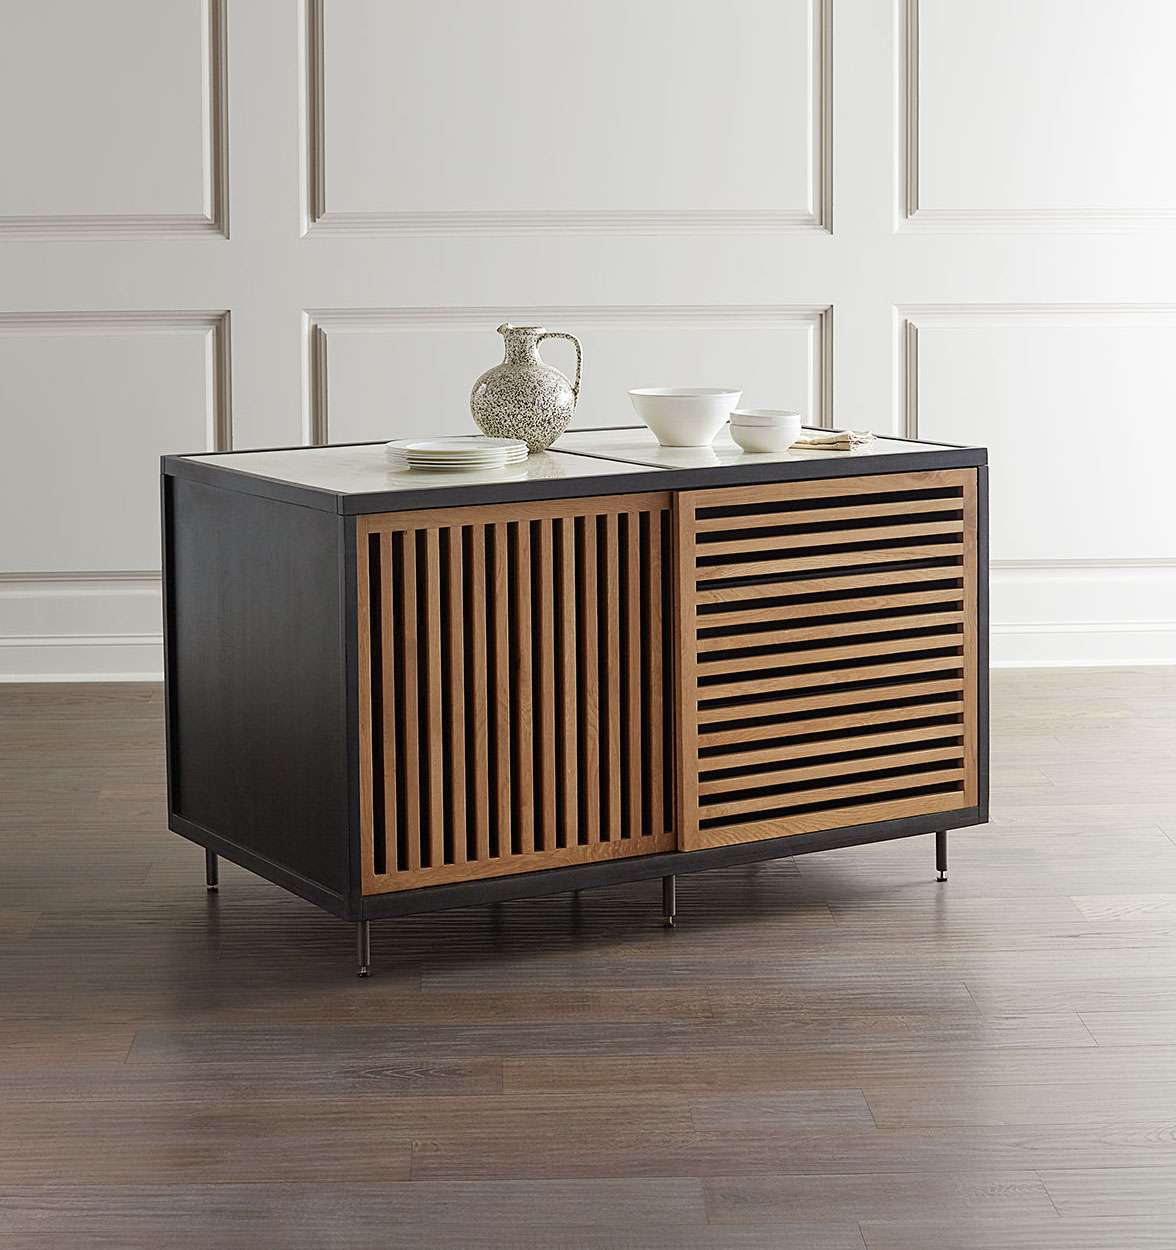 A portable kitchen island lined with discreet shelves